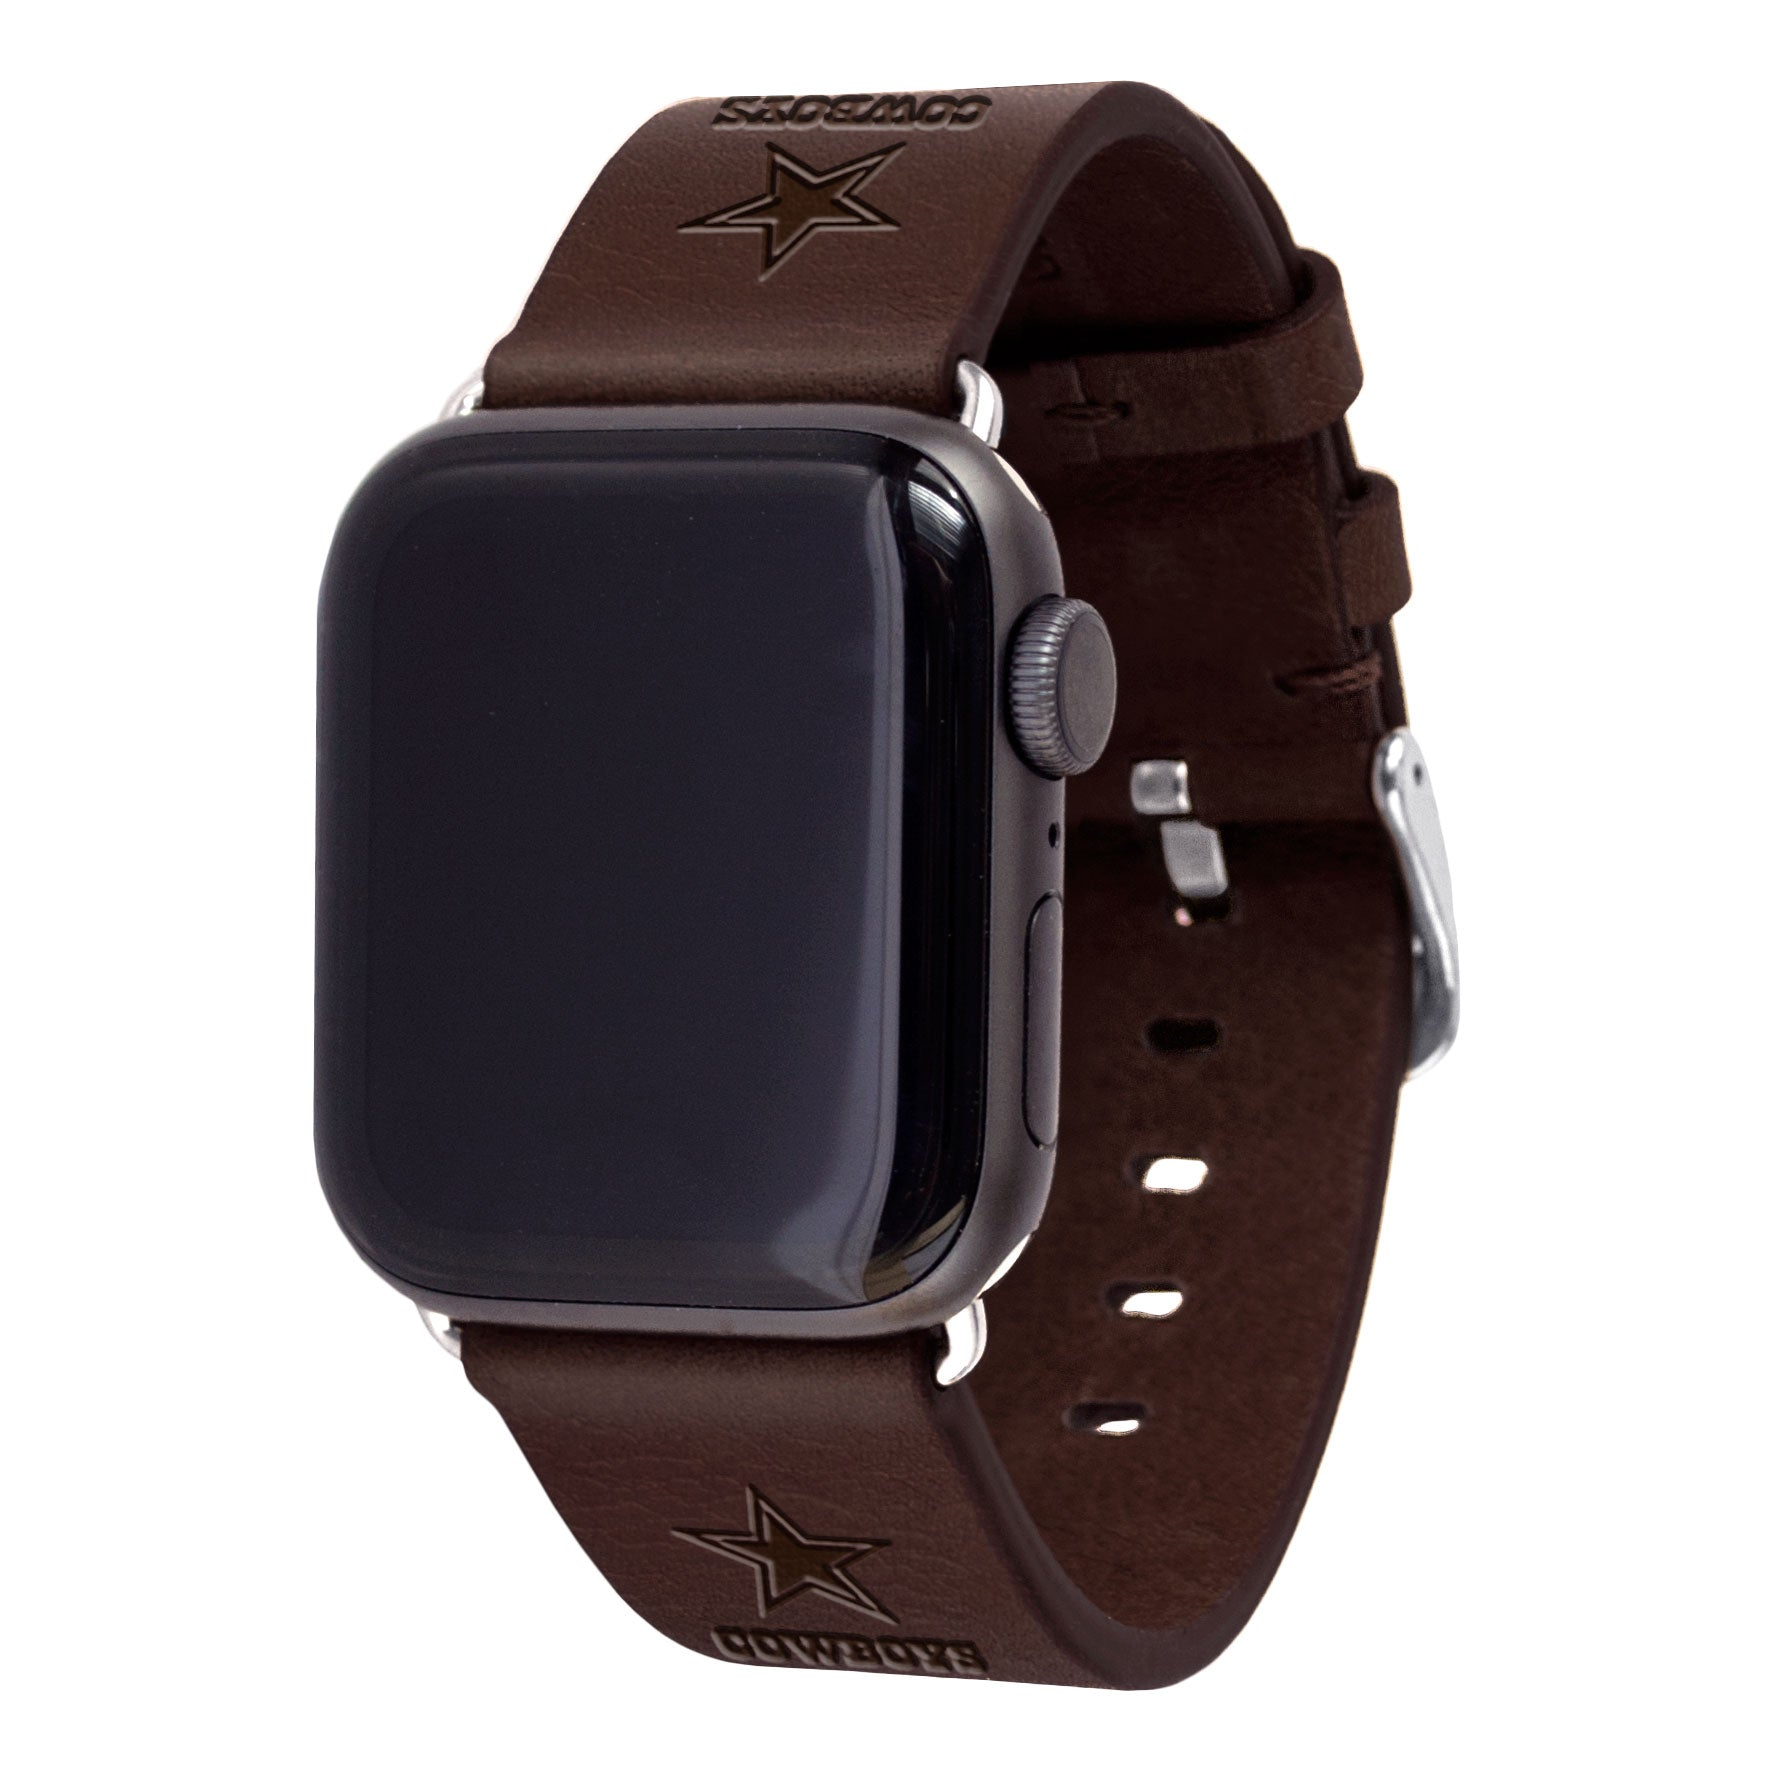 Dallas Cowboys Leather Apple Watch Band